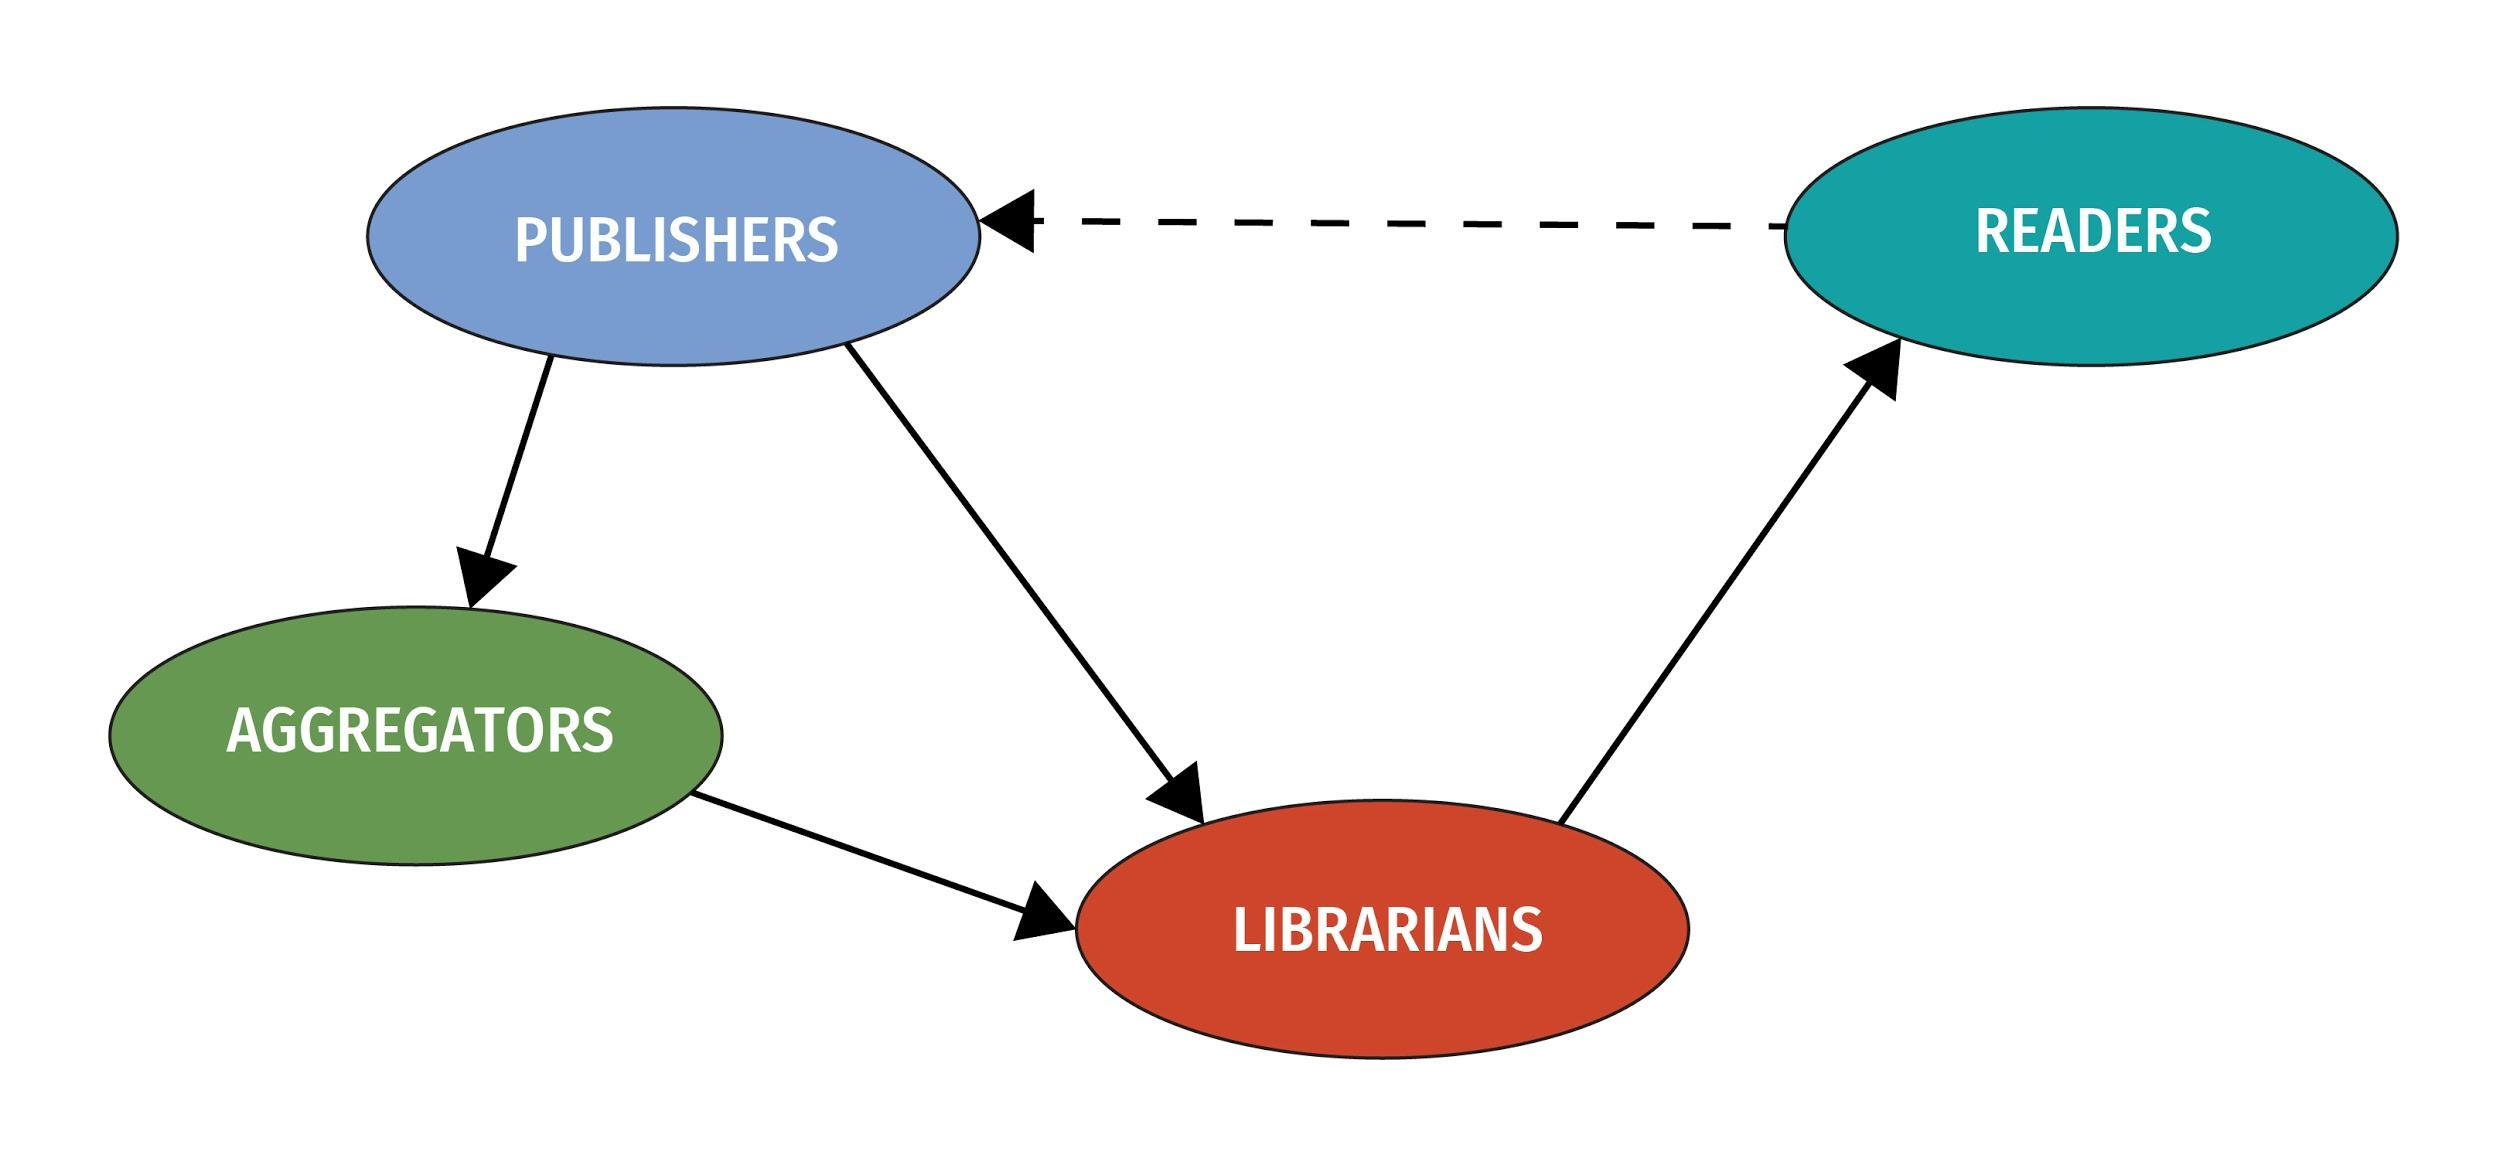 Arrows depict the content flow from Publishers to Aggregators and Librarians, then from Aggregators to Librarians, and finally from Librarians to Readers. A dotted arrow depicts the final flow of content from Readers to Publishers.